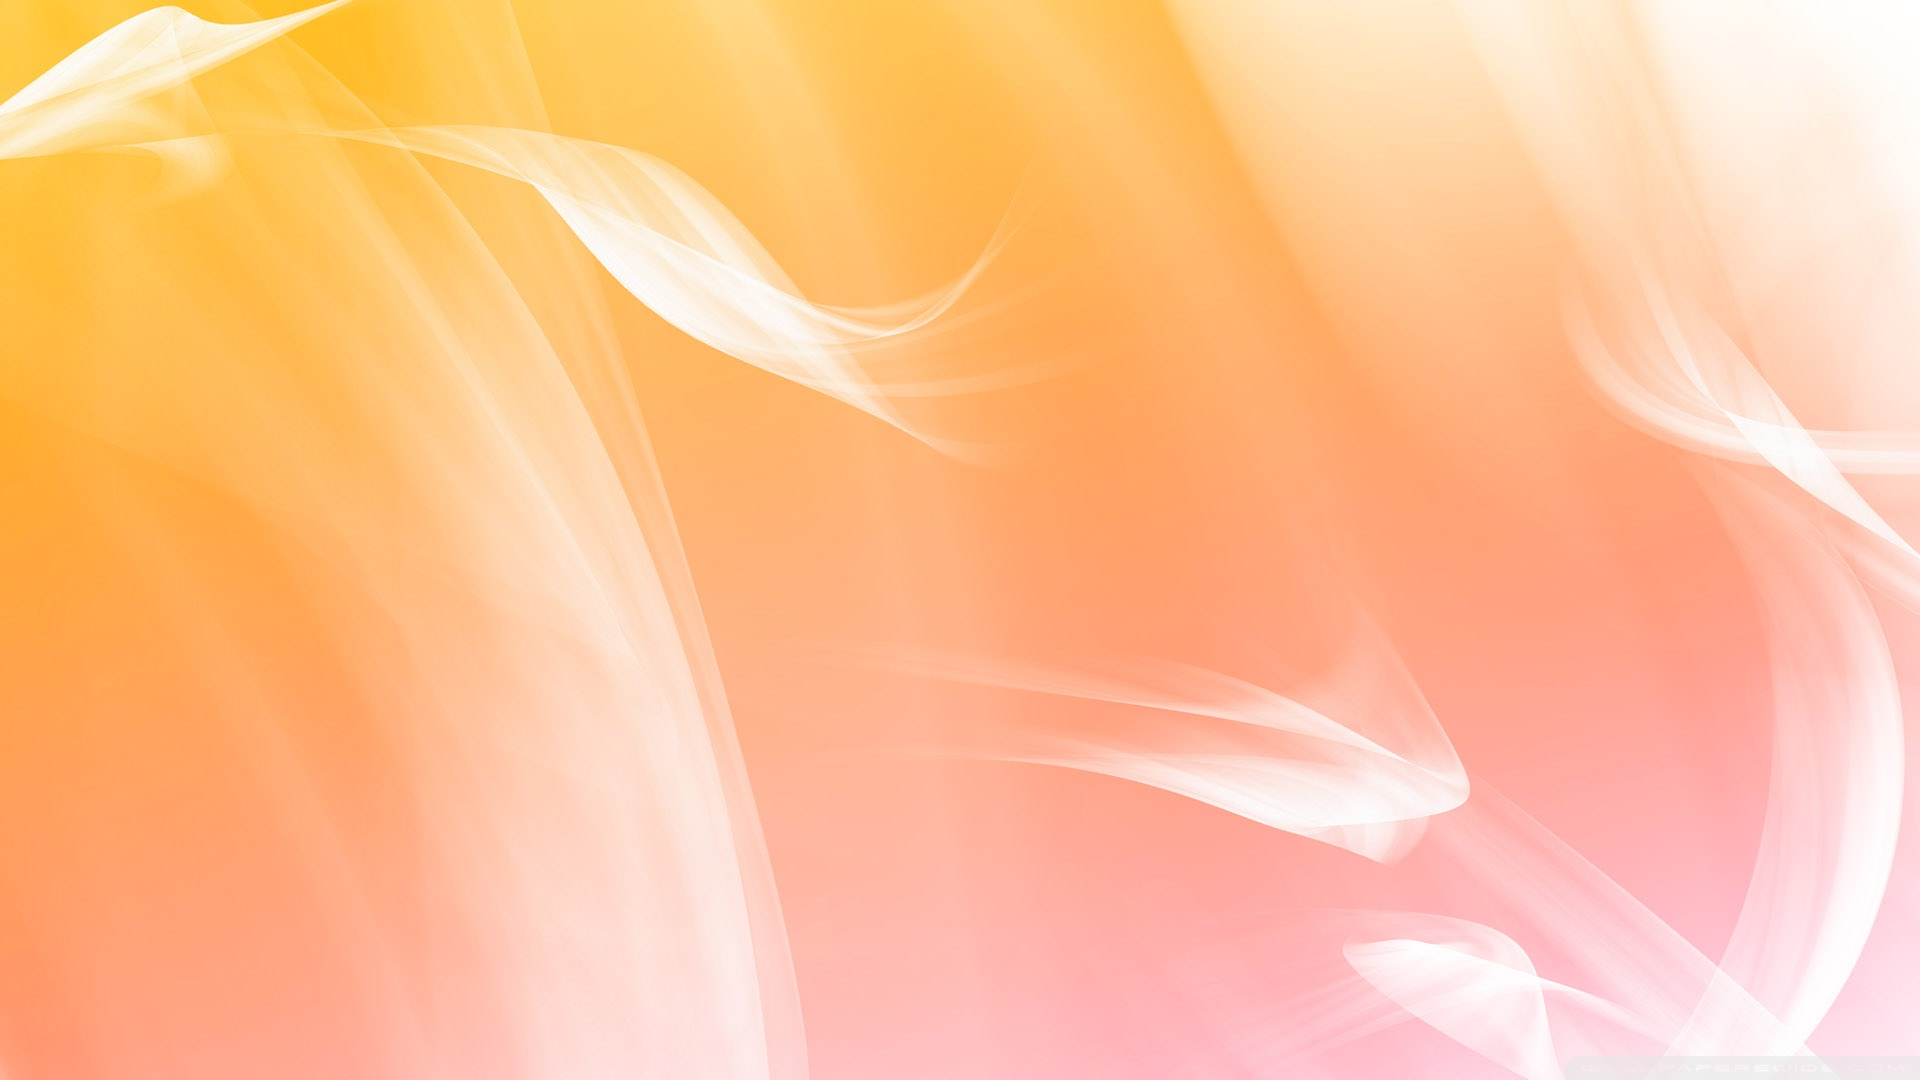 aero_orange_4-wallpaper-1920x1080.jpg